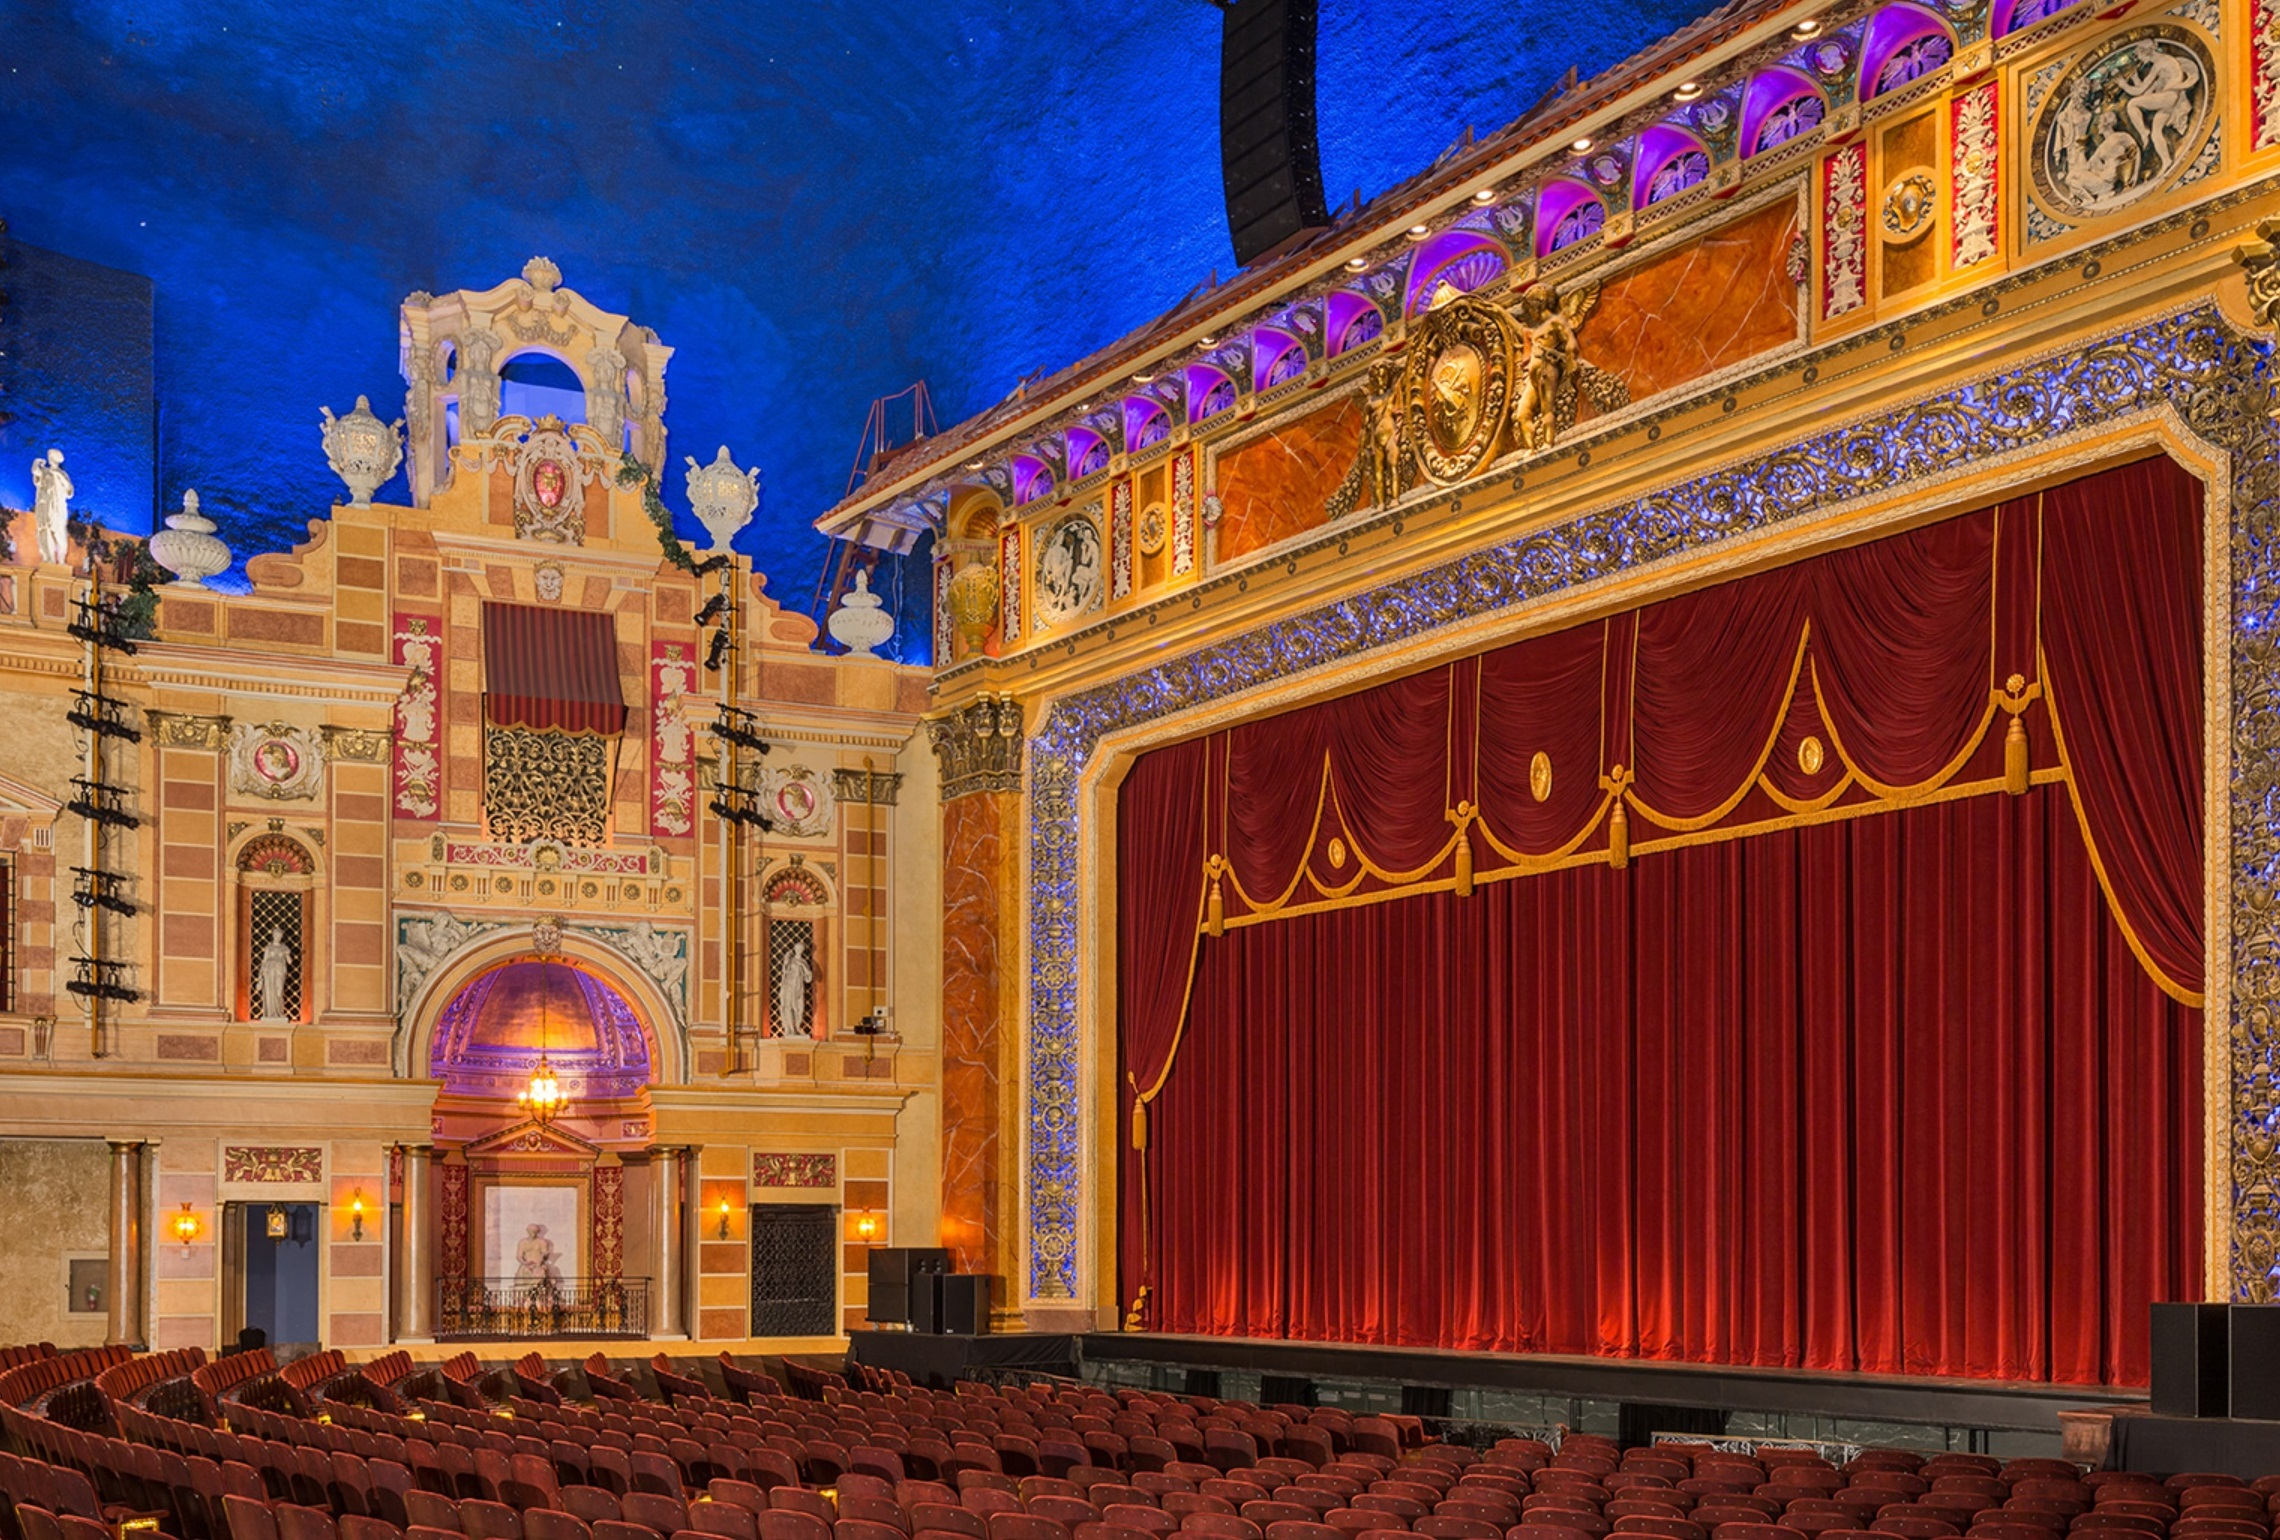 Orchestra view of Saenger Theatre